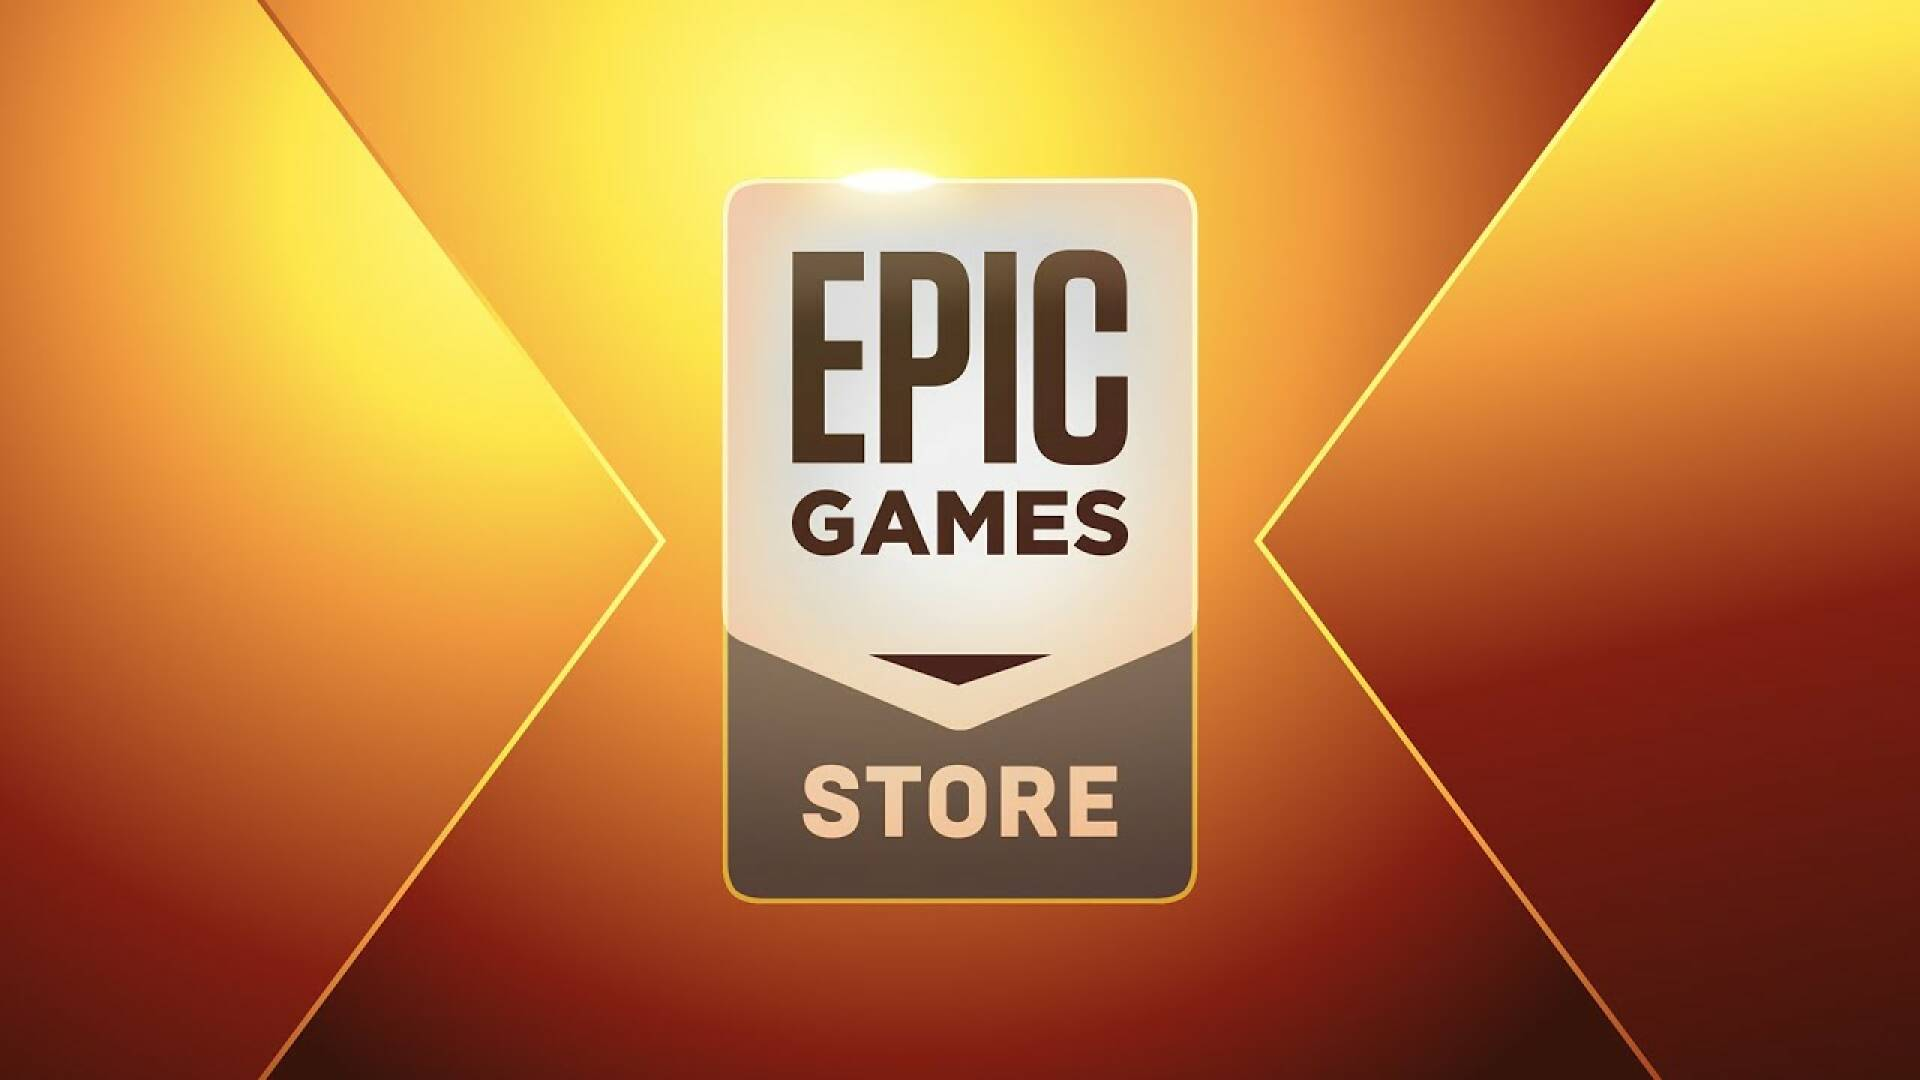 Epic Games Store gives 10 euros: how to get the free bonus